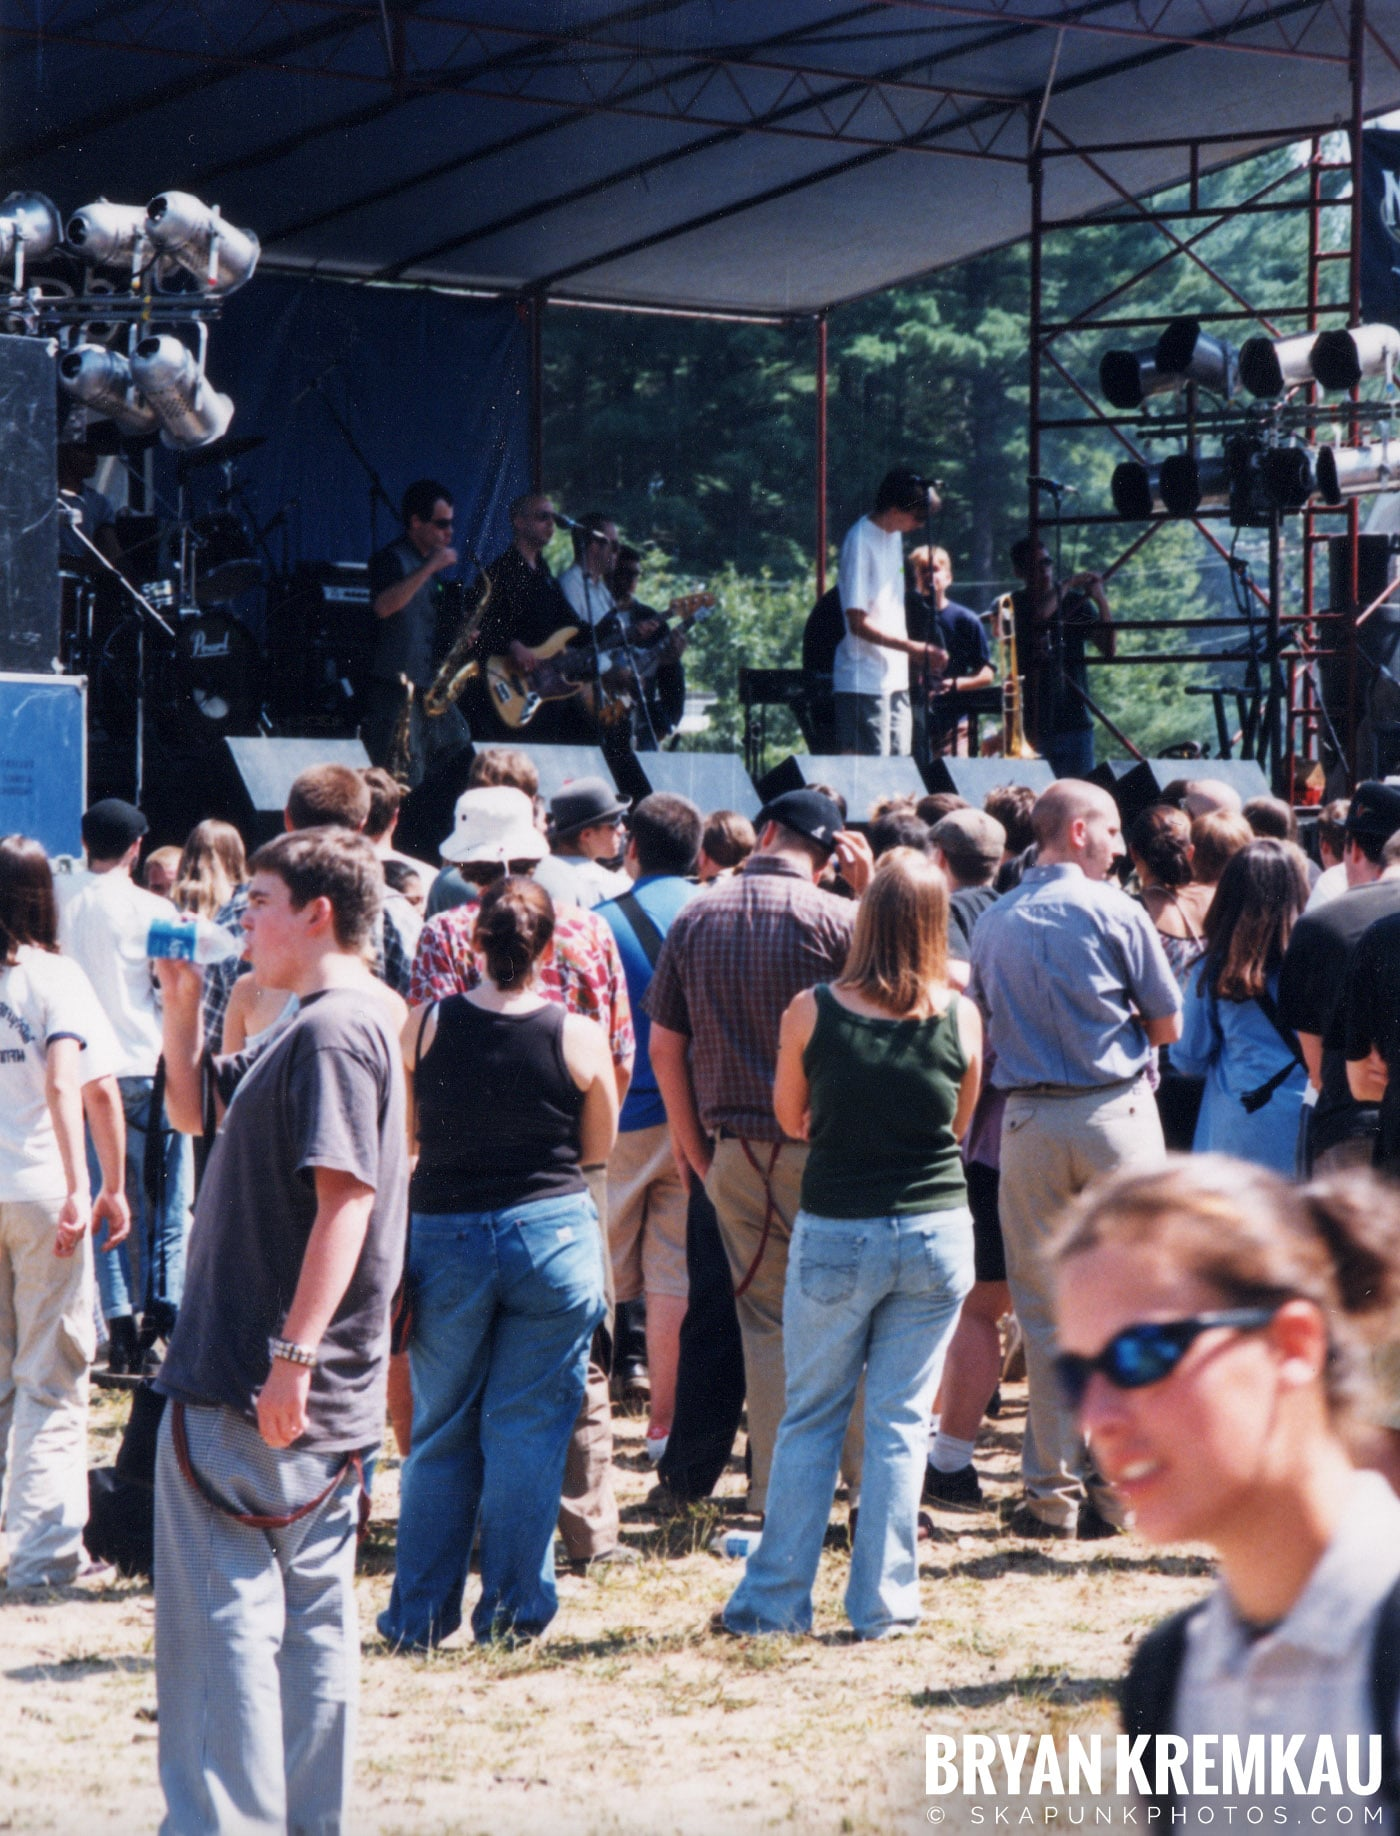 Crowd Shots @ New England Ska Fest 98, Westford, MA - 8.22.98 (11)